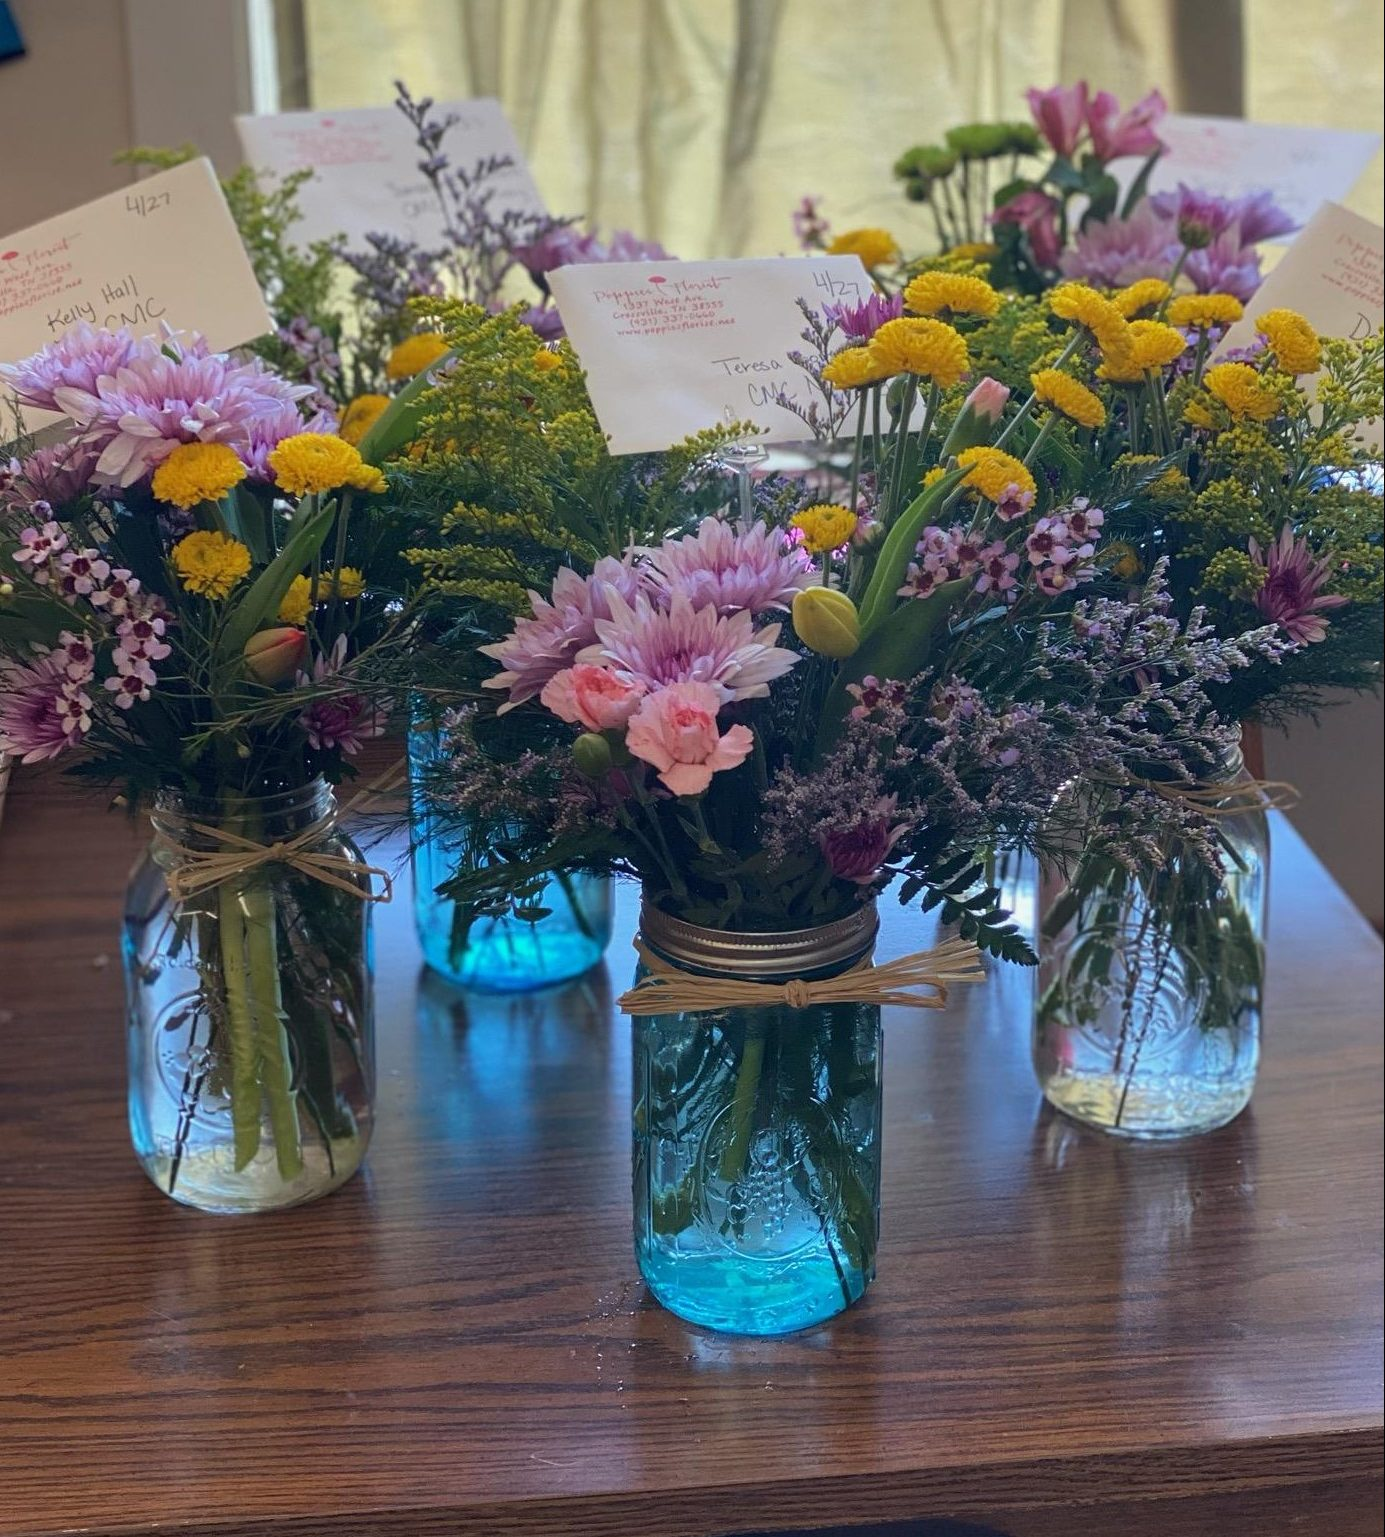 Thank you Poppies Florist of Crossville! Your thoughtful Essential Worker Bouquets are a perfect touch. We appreciate you for regularly recognizing our team members!